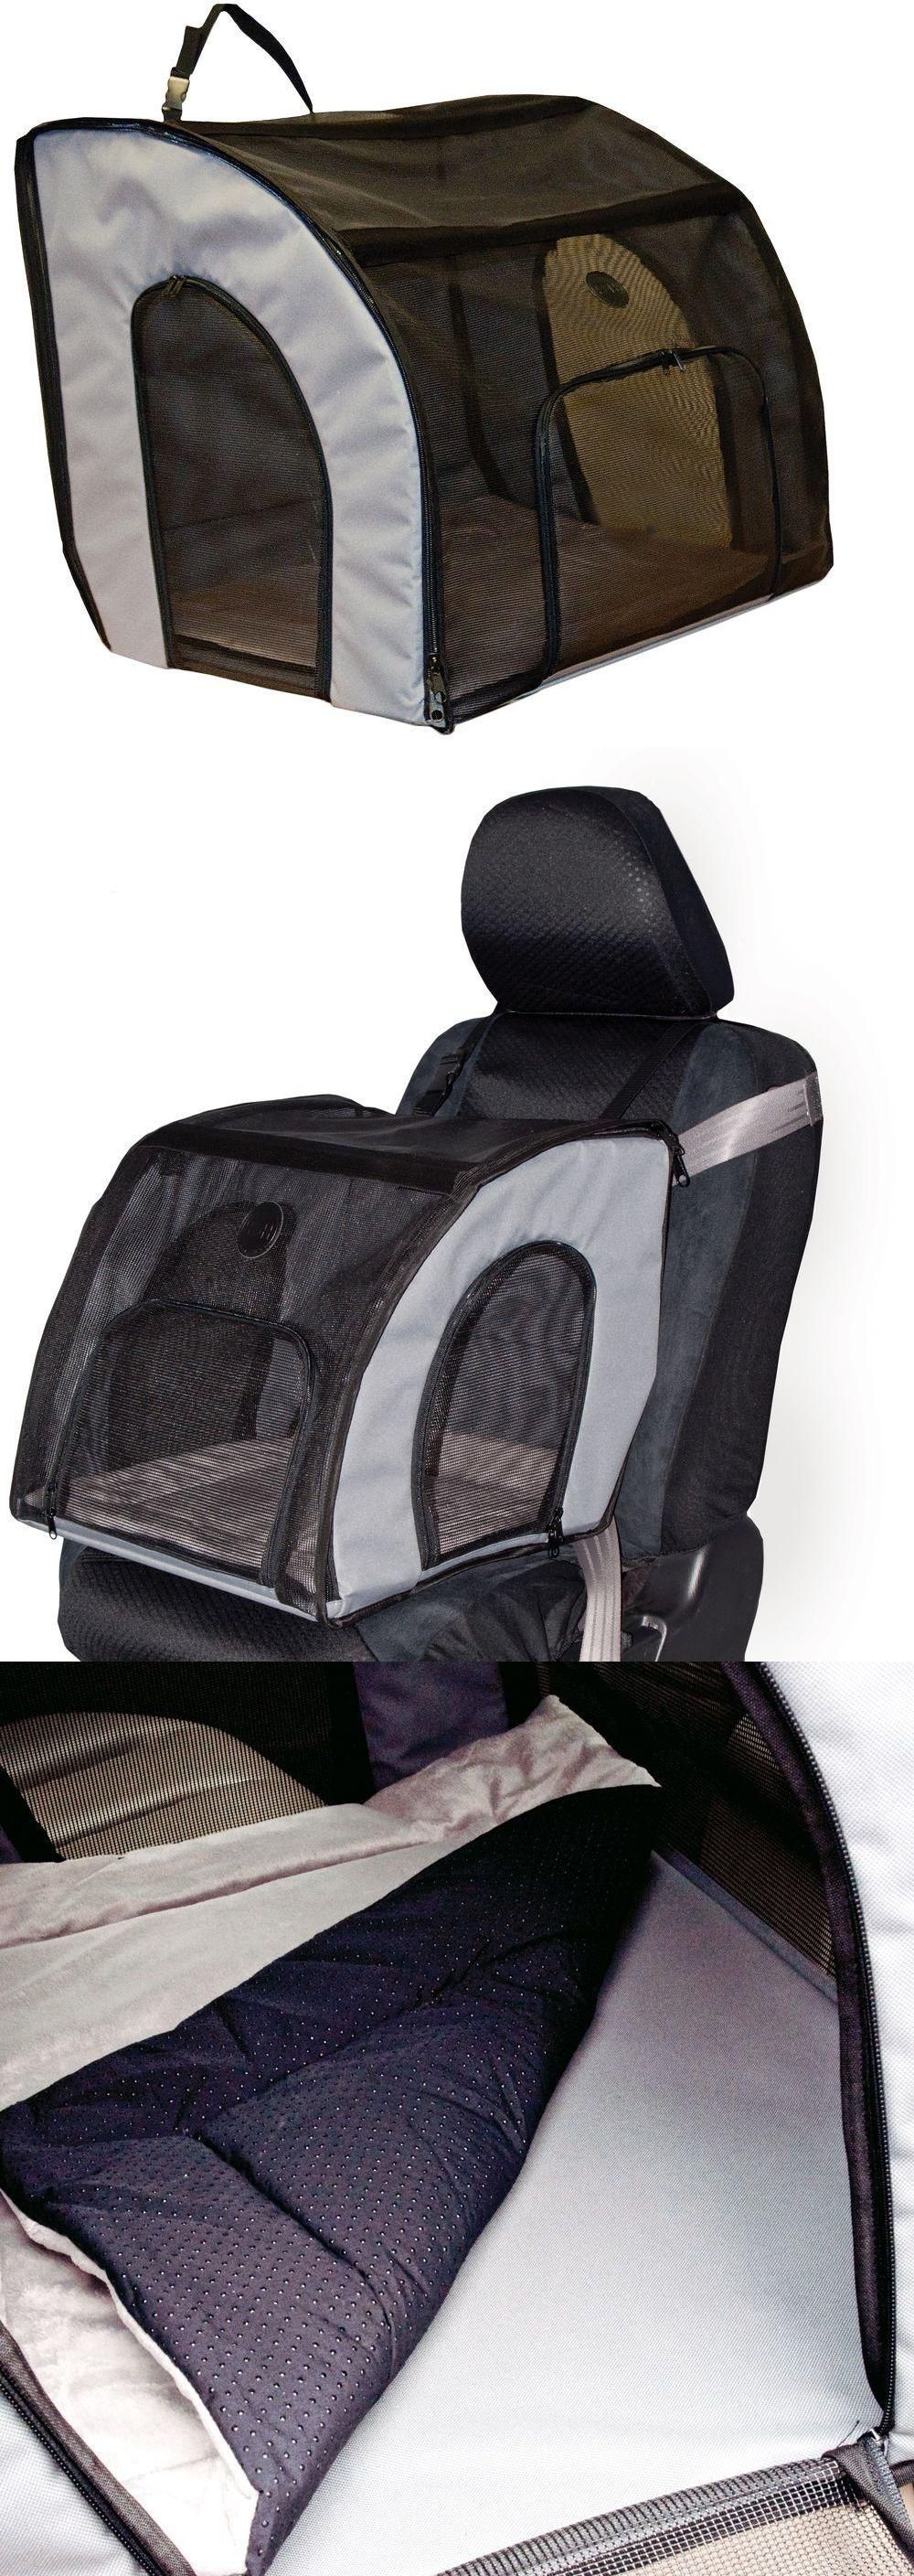 Car seats and barriers travel safety carrier large pet